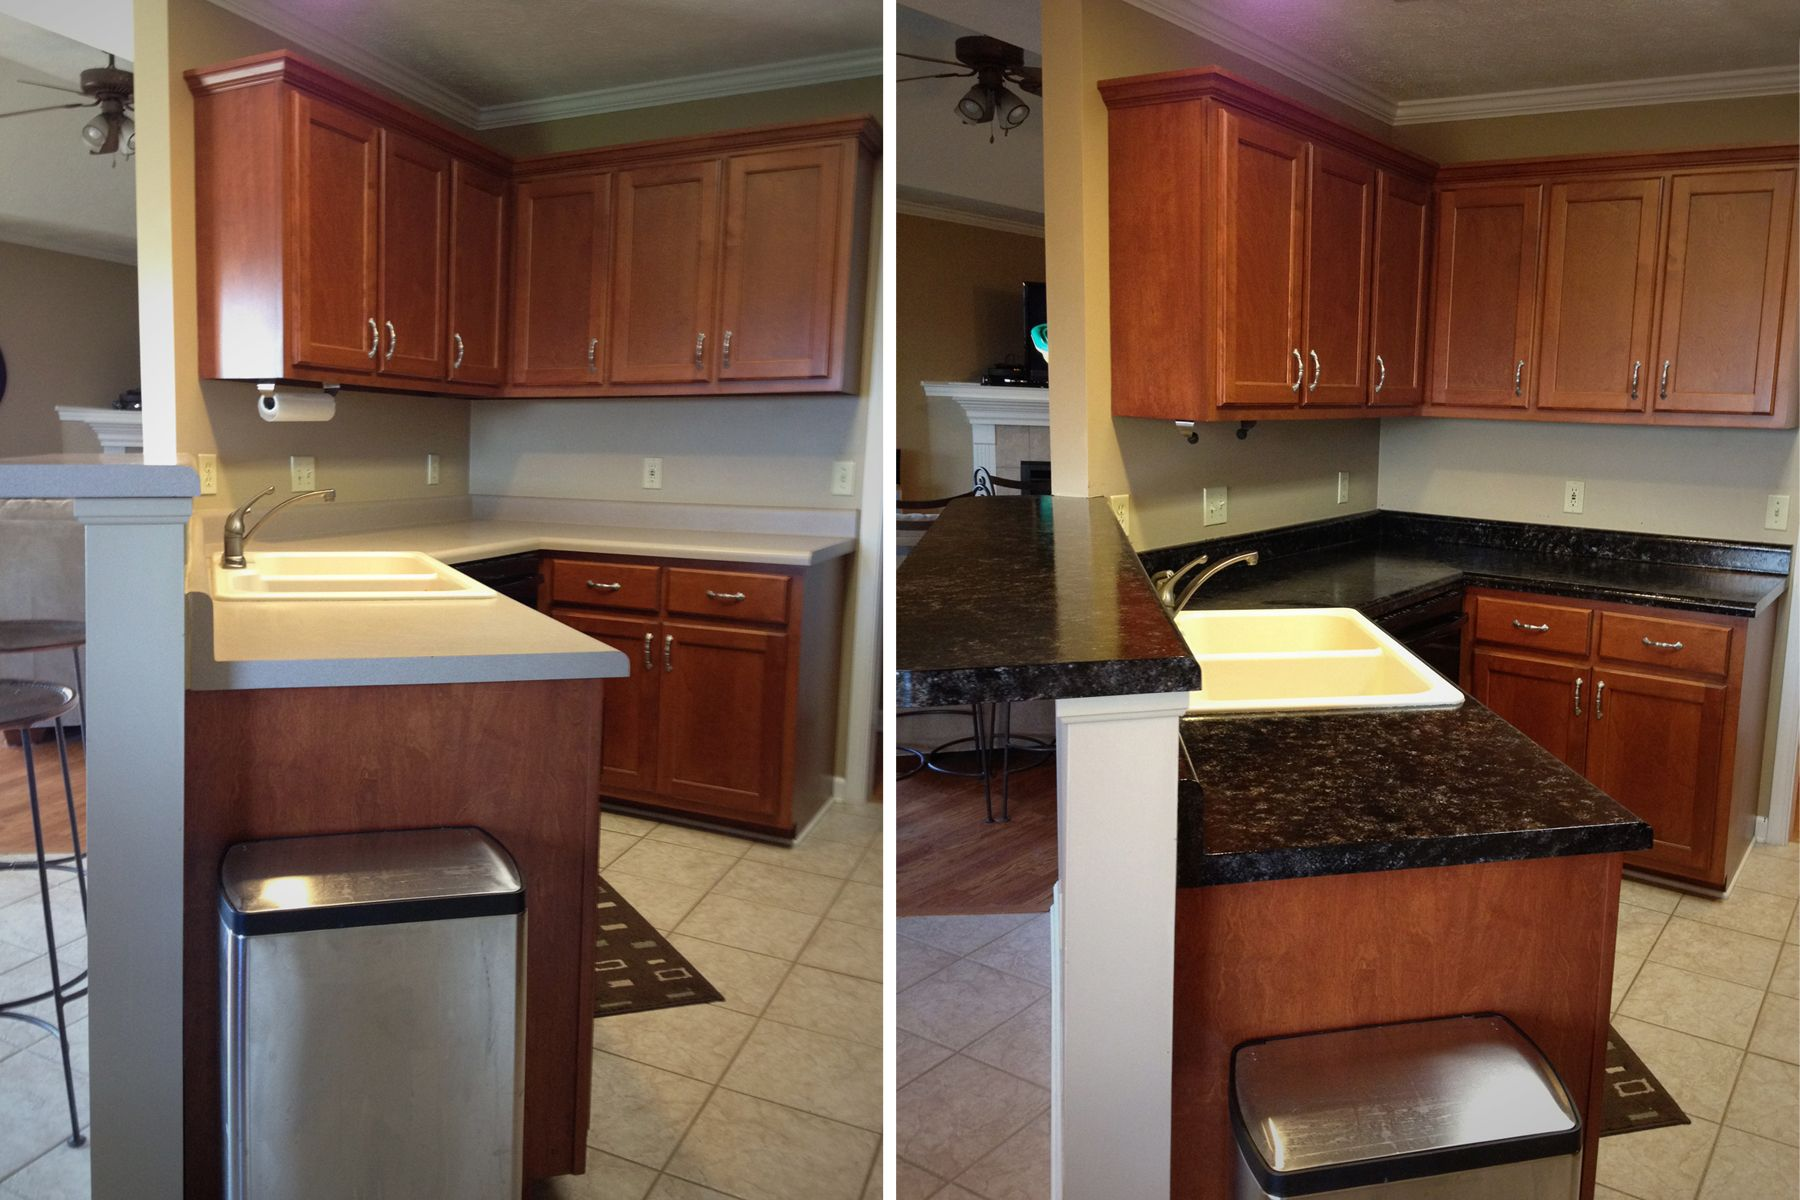 Diy Faux Granite Countertops I Was Tired Of My Formica Counters And Replaced Them For Less Than